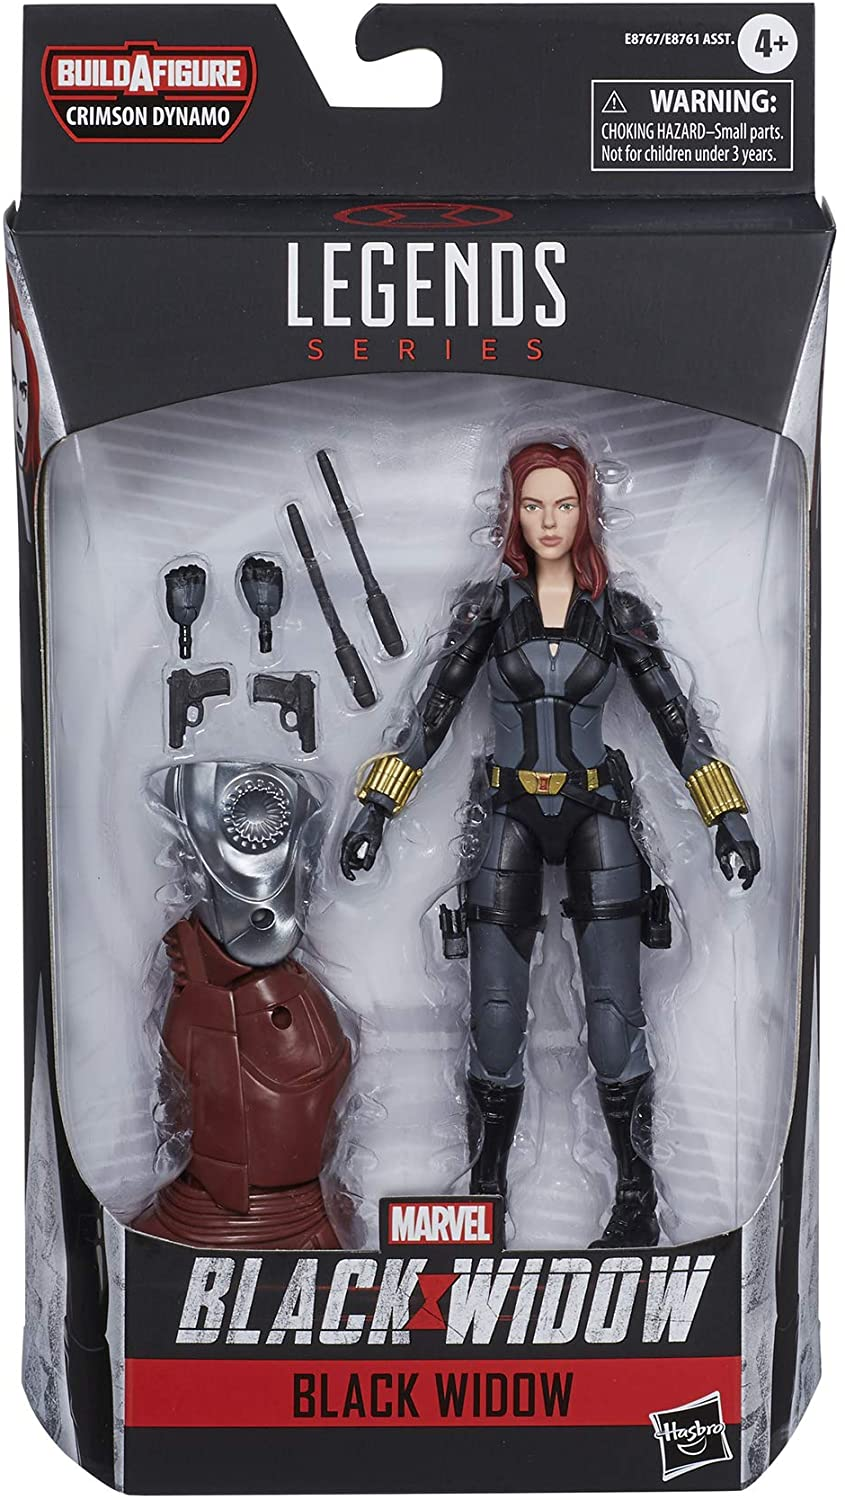 Marvel Hasbro Black Widow Legends Series 6-inch Collectible Black Widow Action Figure Toy,